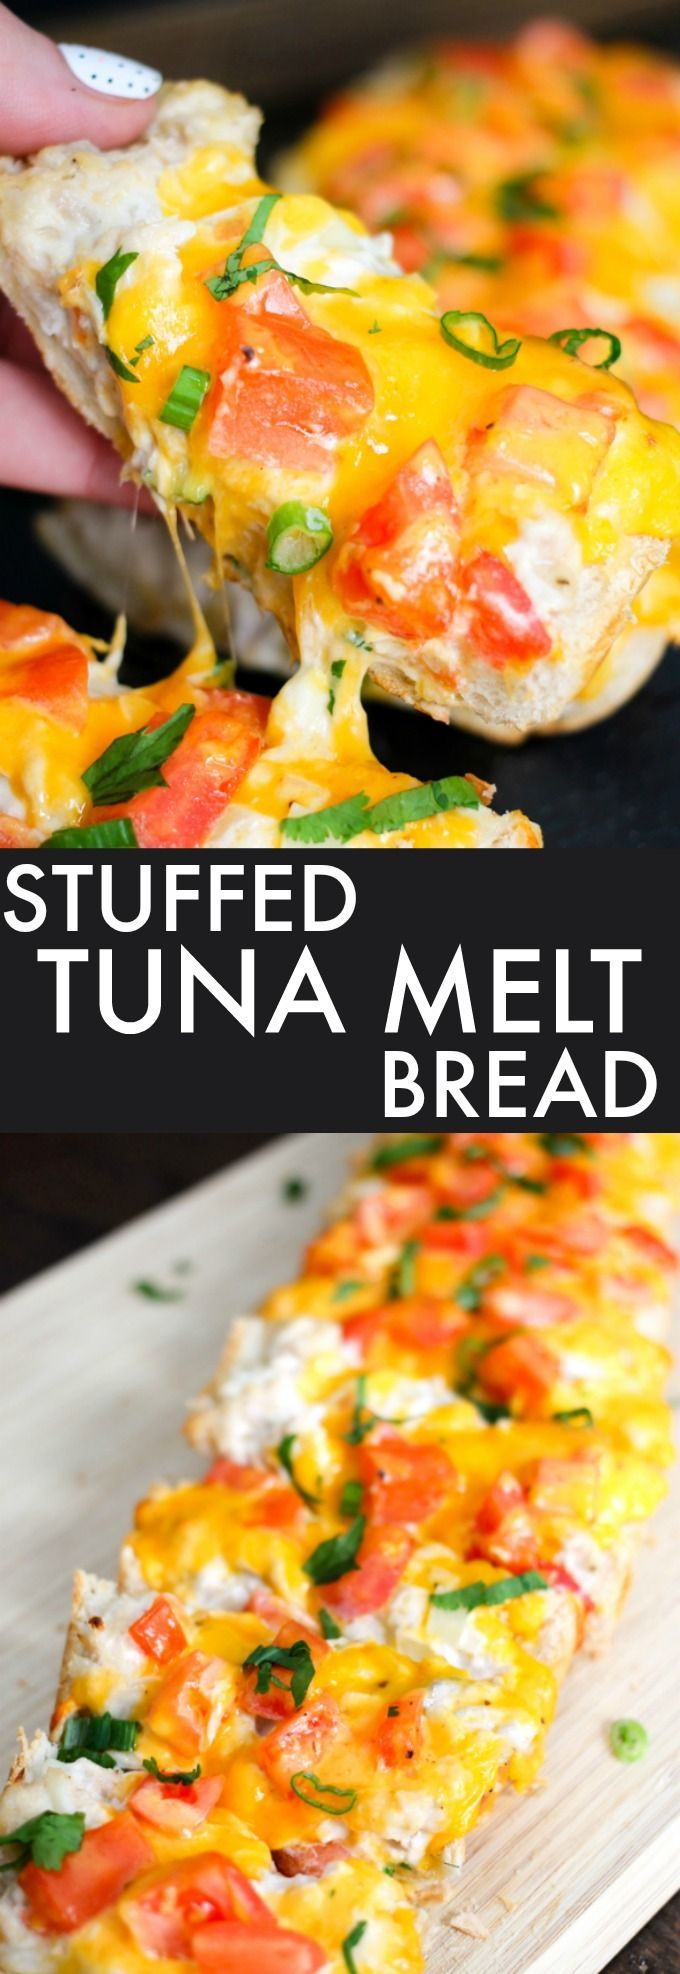 Stuffed Tuna Melt Bread takes the classic sandwich to a new level. Creamy tuna topped with tomatoes and cheese makes for the perfect lunch or party snack!